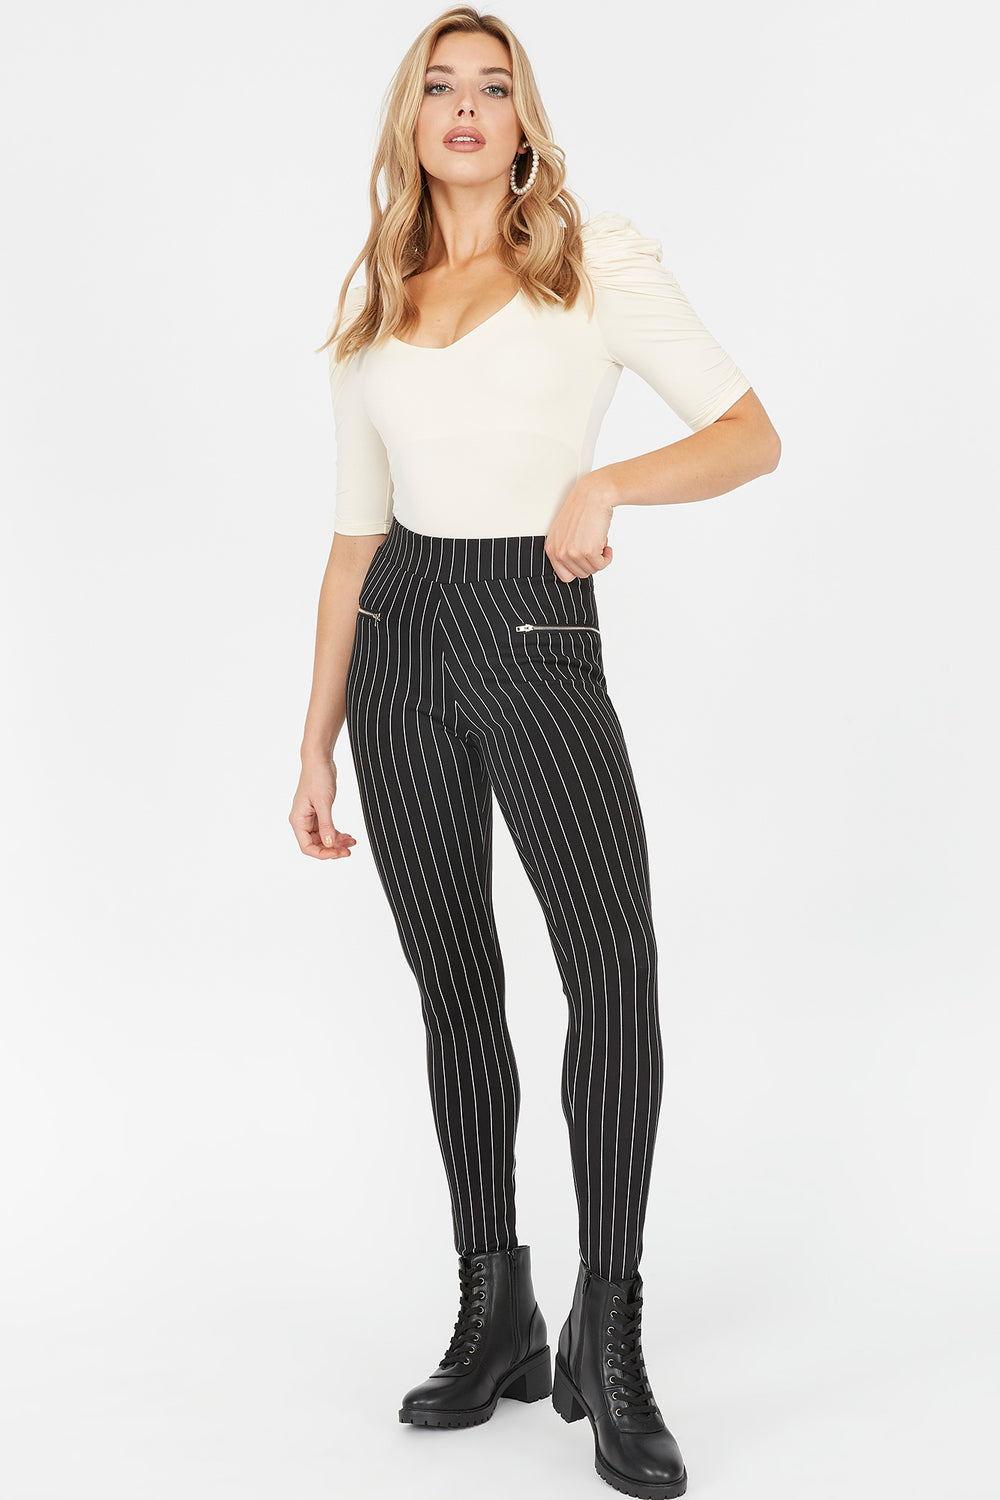 Soft High-Rise Striped Zip Legging Black with White